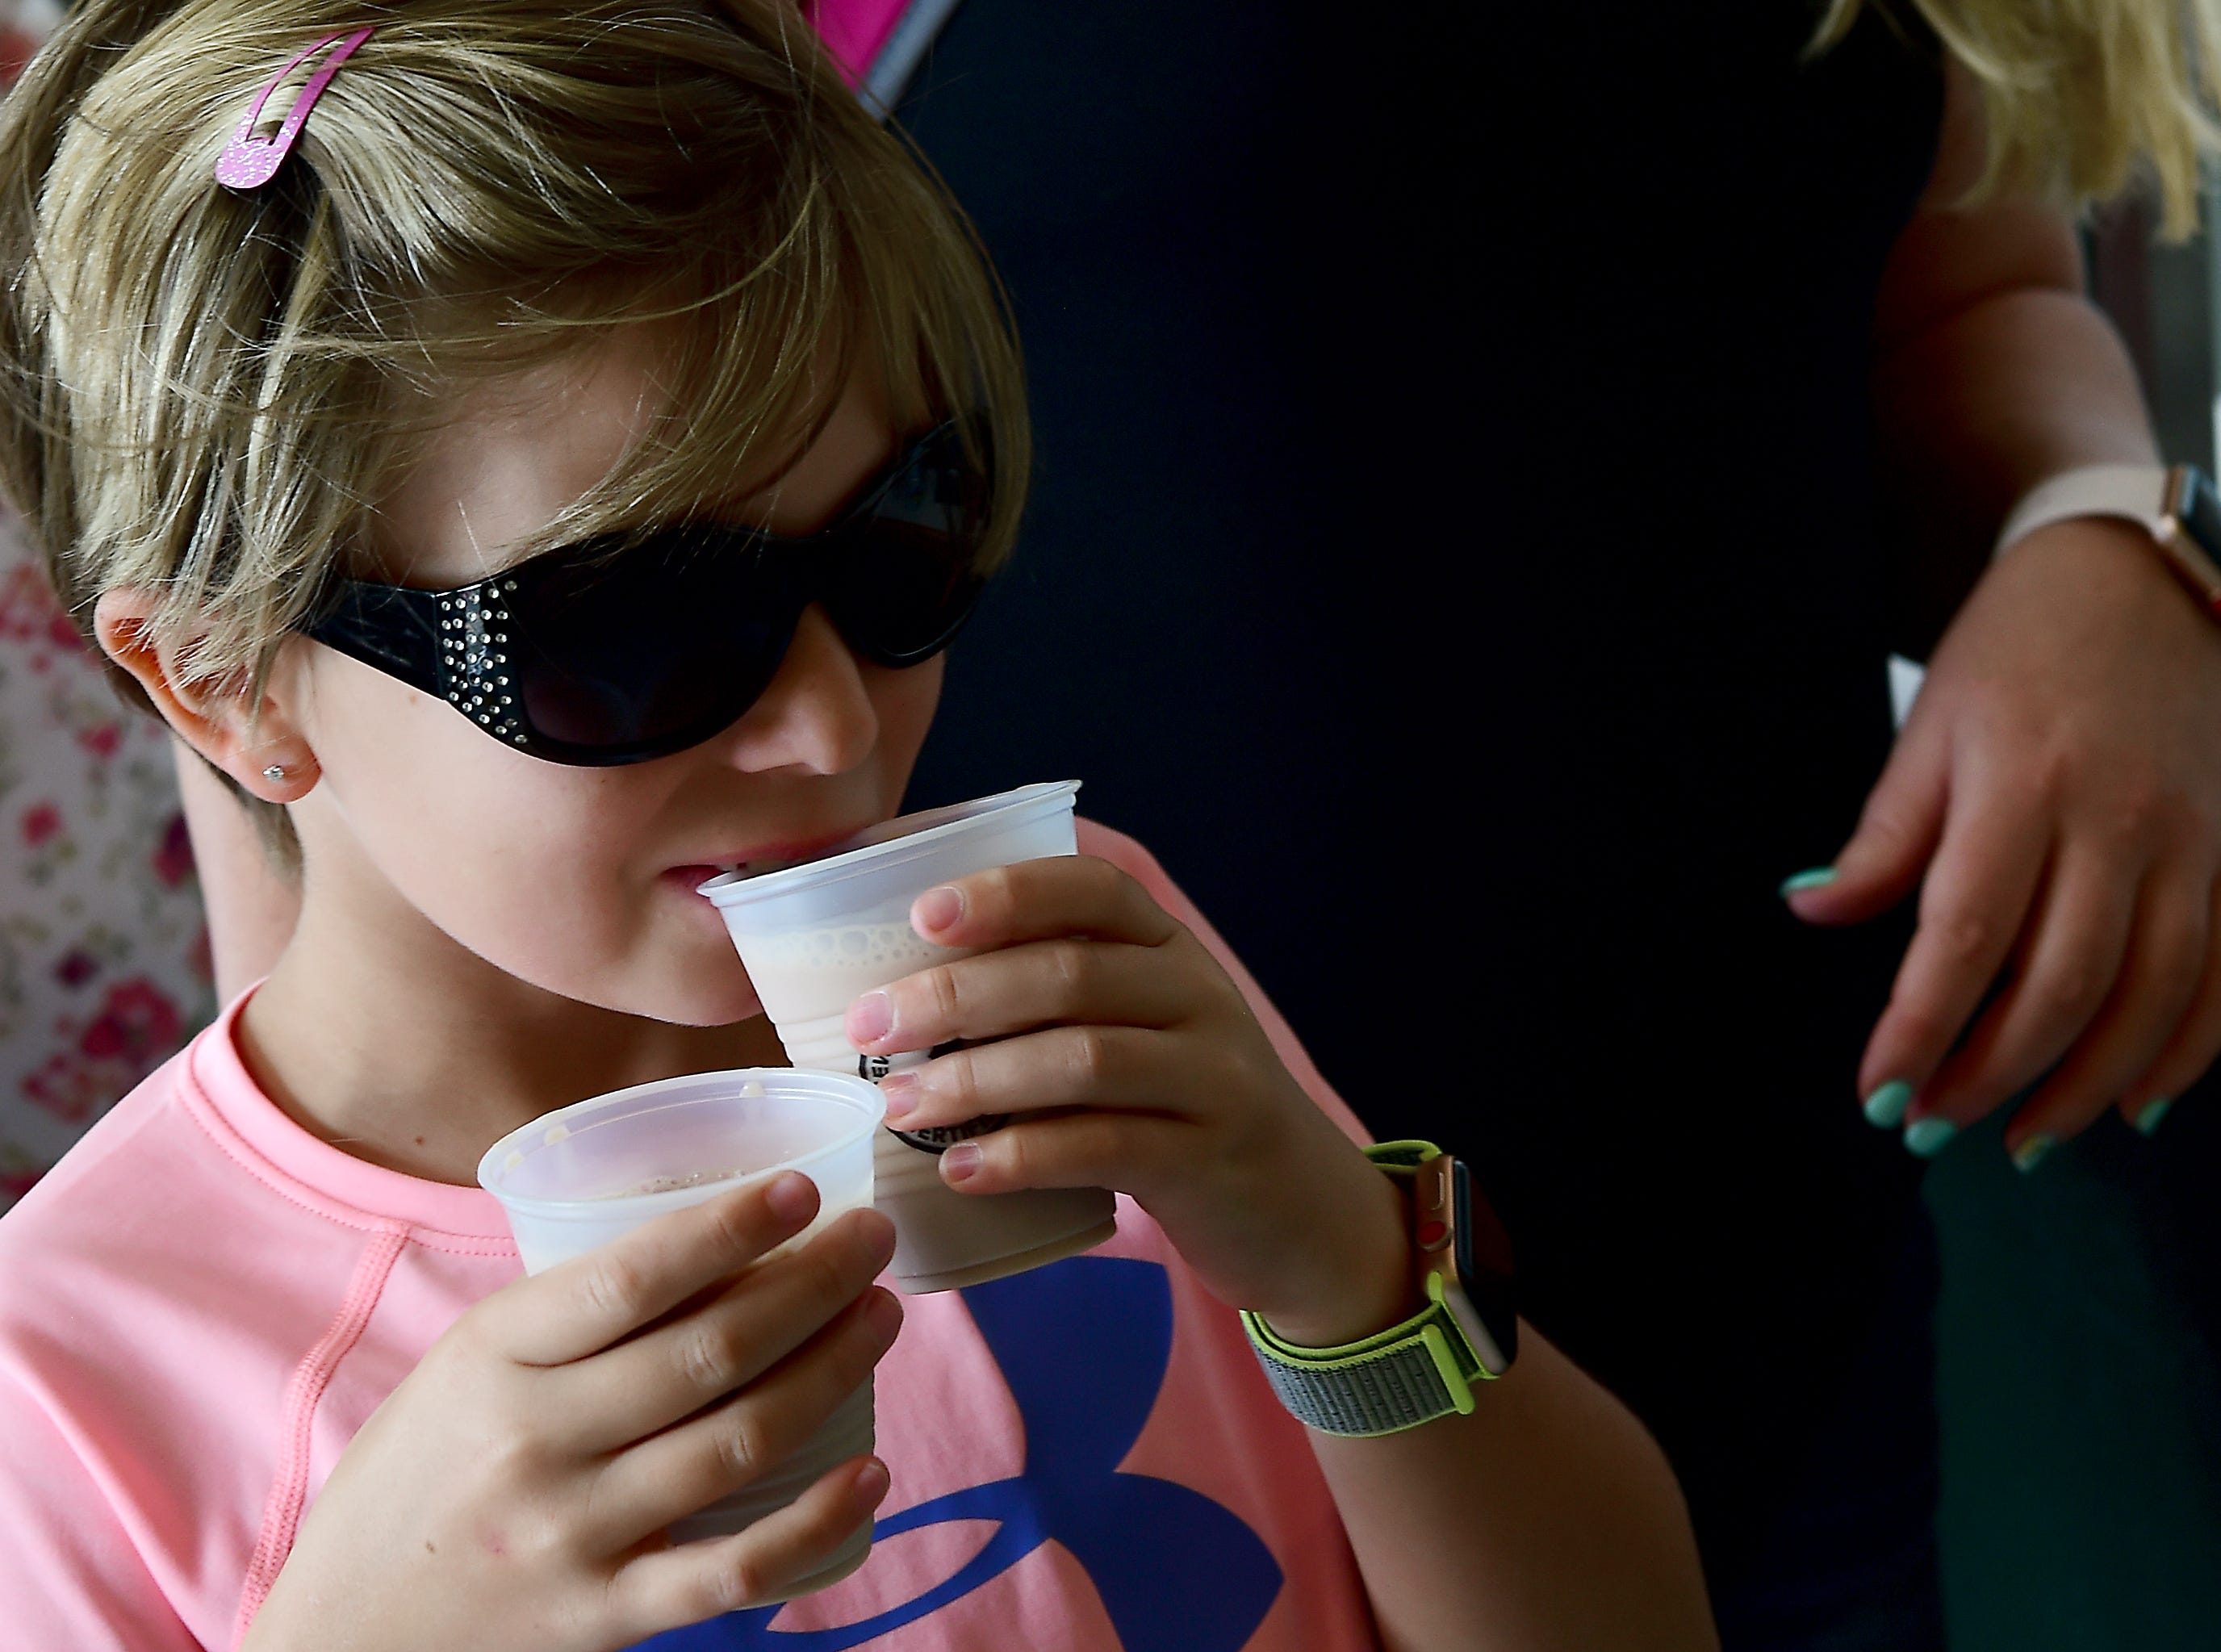 Abby Teeter of Candor enjoys milk from the Milk Bar. The Great New York State Fair is an annual summer tradition that celebrates the agriculture, traditions, foods and people of New York State. The Fair continues through Labor Day at the Fairgrounds near Syracuse, NY. August 30, 2018.